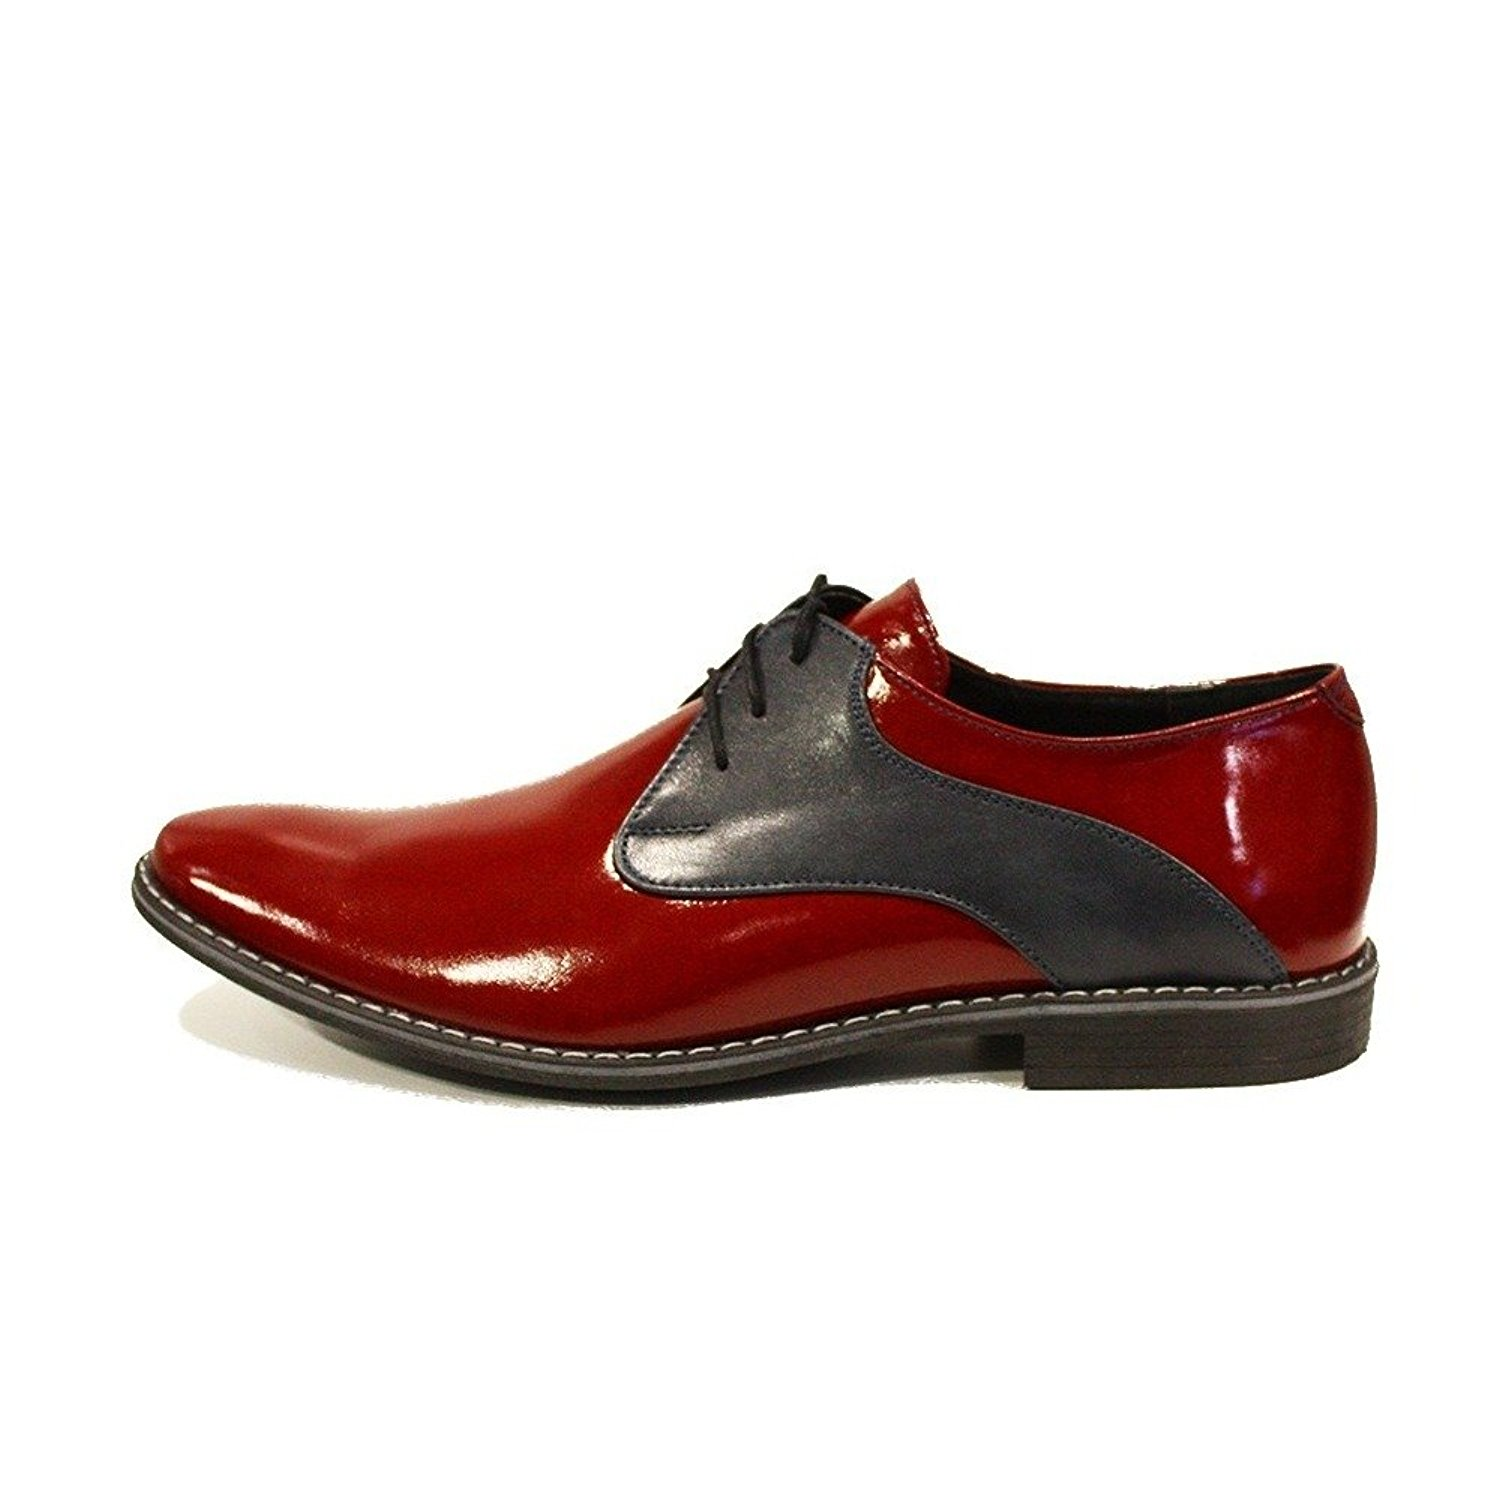 Modello Otito - Handmade Italian Mens Red Oxfords Dress Shoes - Cowhide Patent Leather - Lace-up